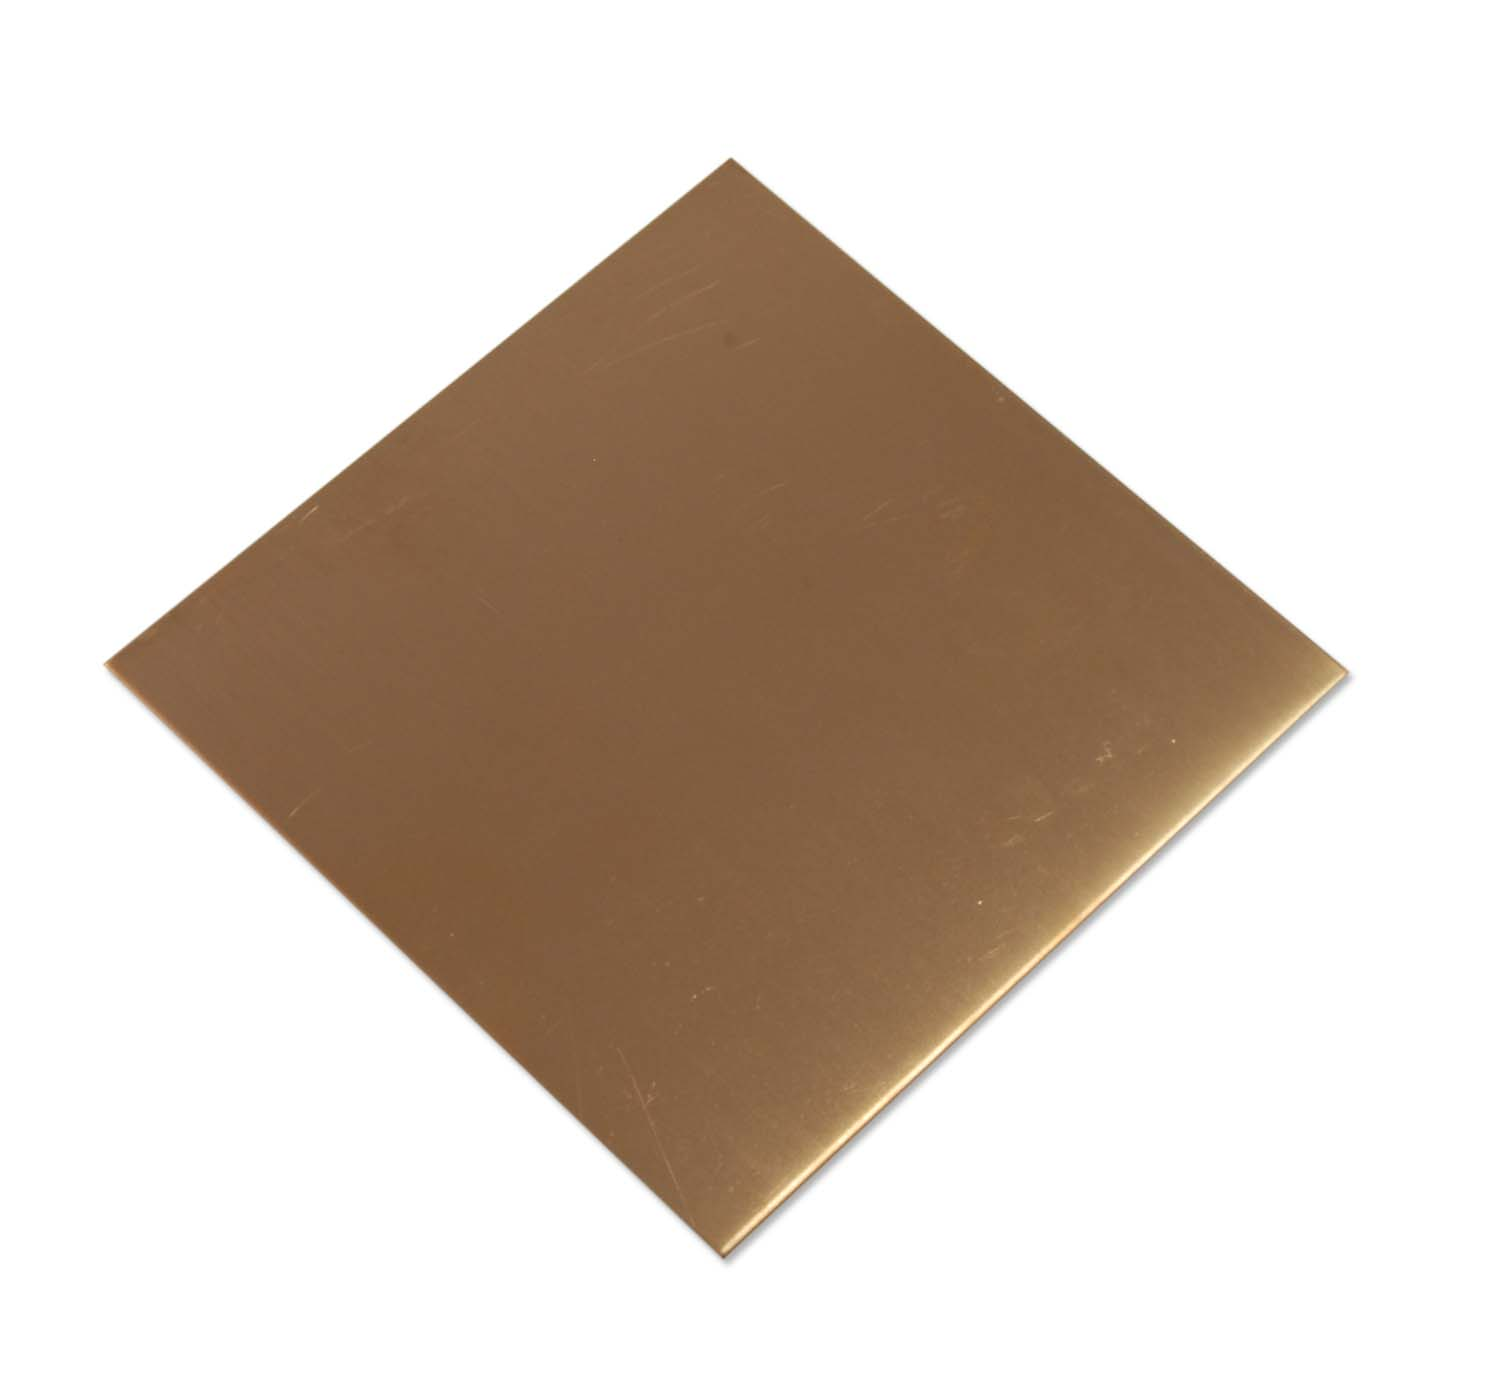 Copper Sheet 26 Gauge Copper Sheet For Jewelry Making And